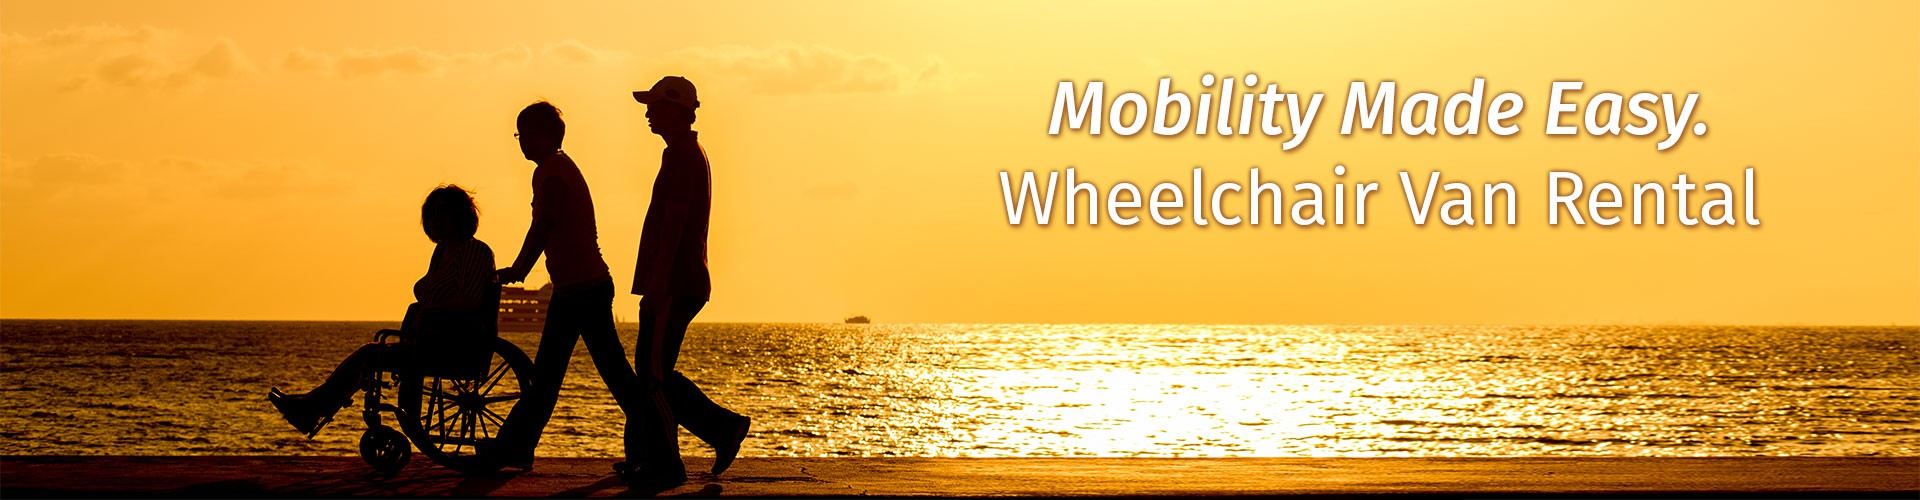 Florida Wheelchair Van Rental Florida